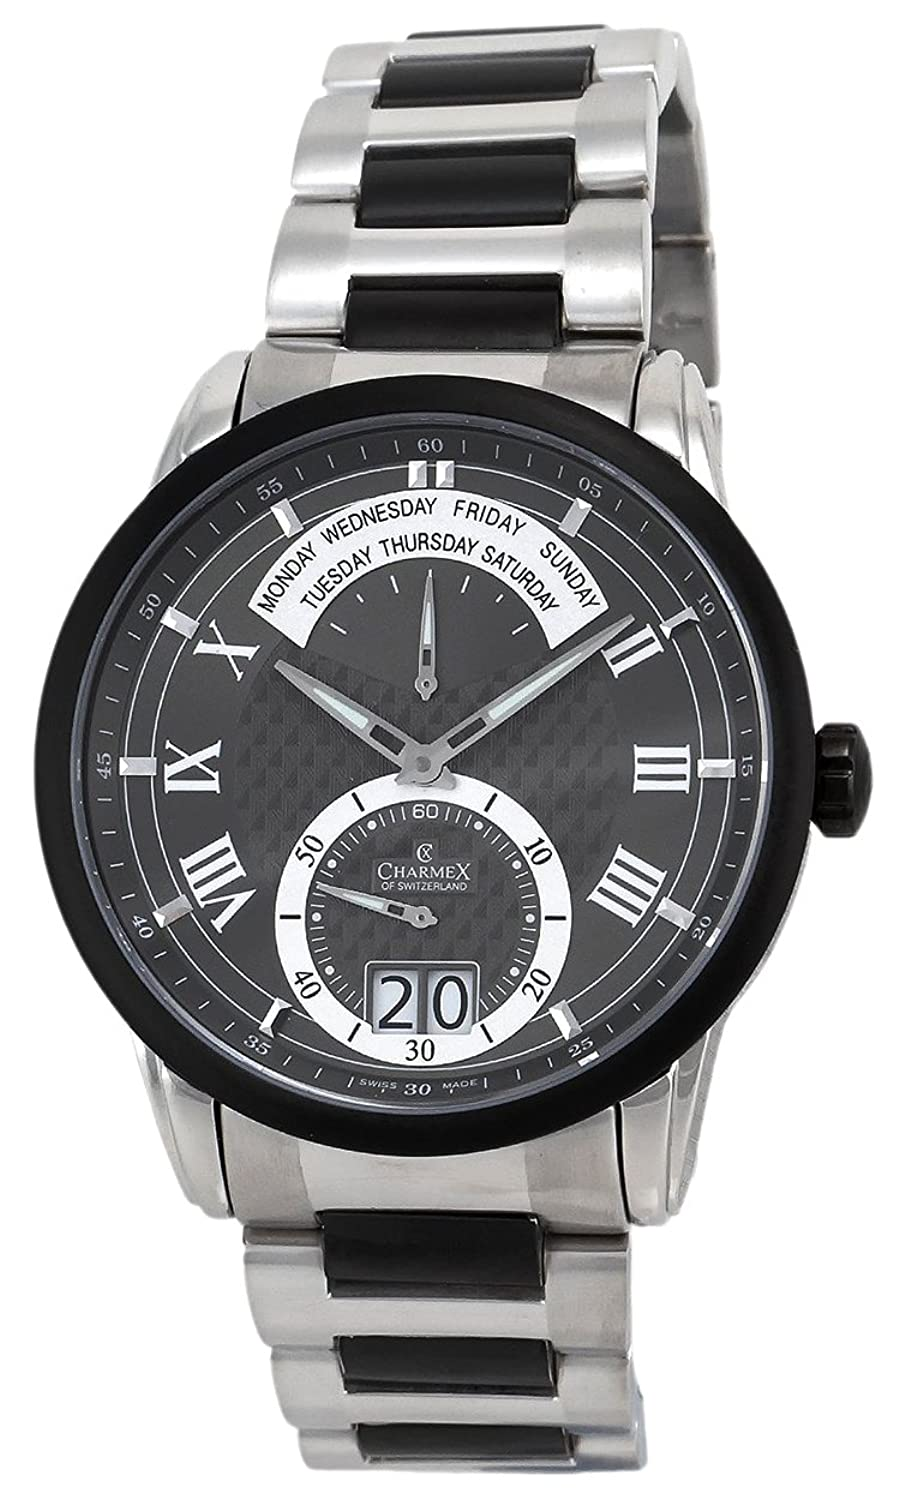 Charmex Zermatt Retrograde Steel & PVD Mens Watch Dark Grey Dial Quartz Day of Week 2156